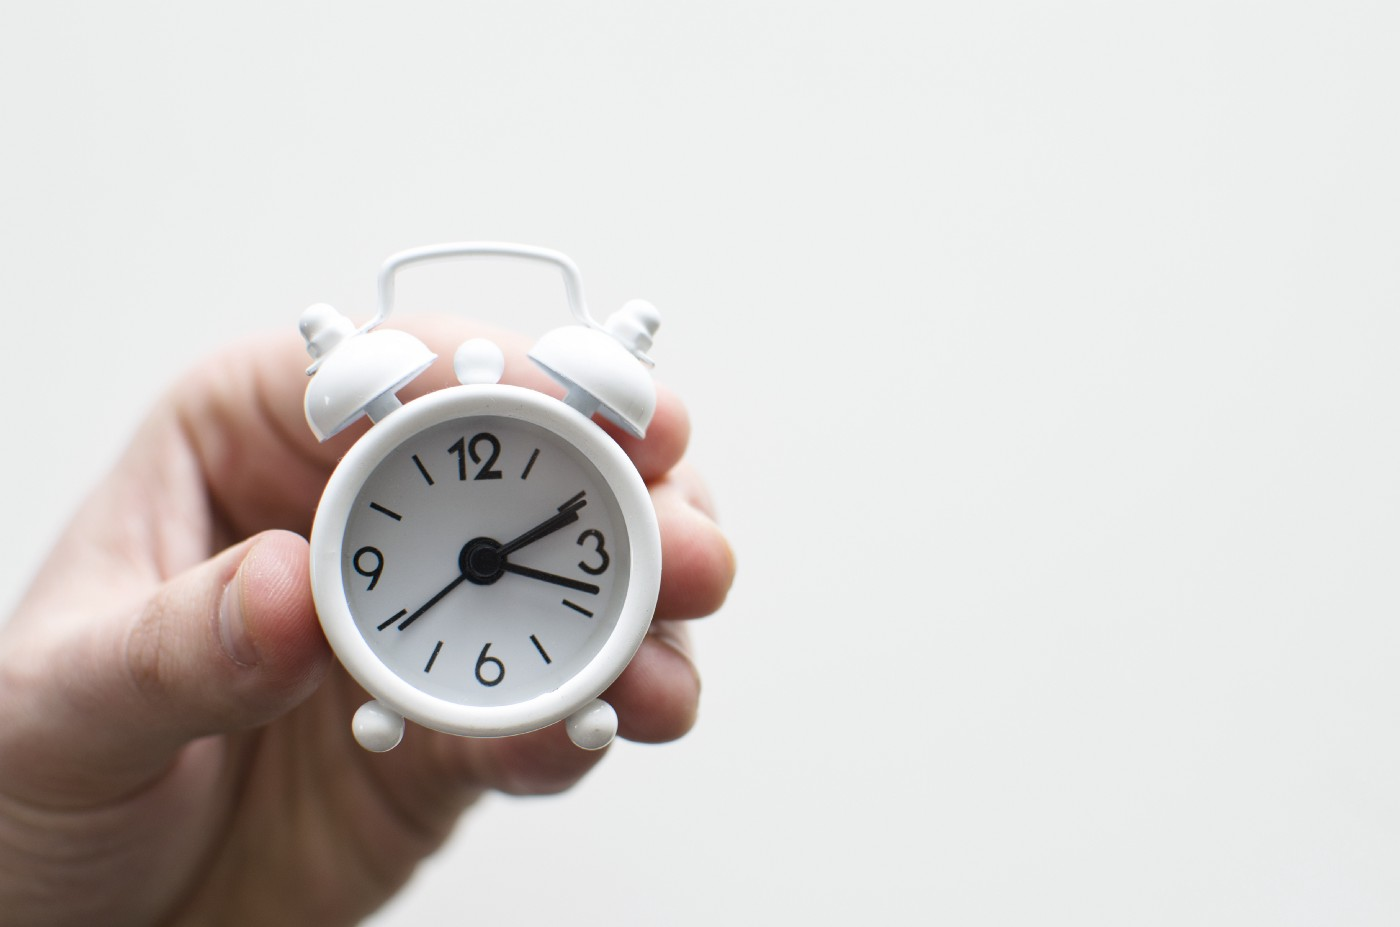 hand holding a small old-fashioned manual alarm clock